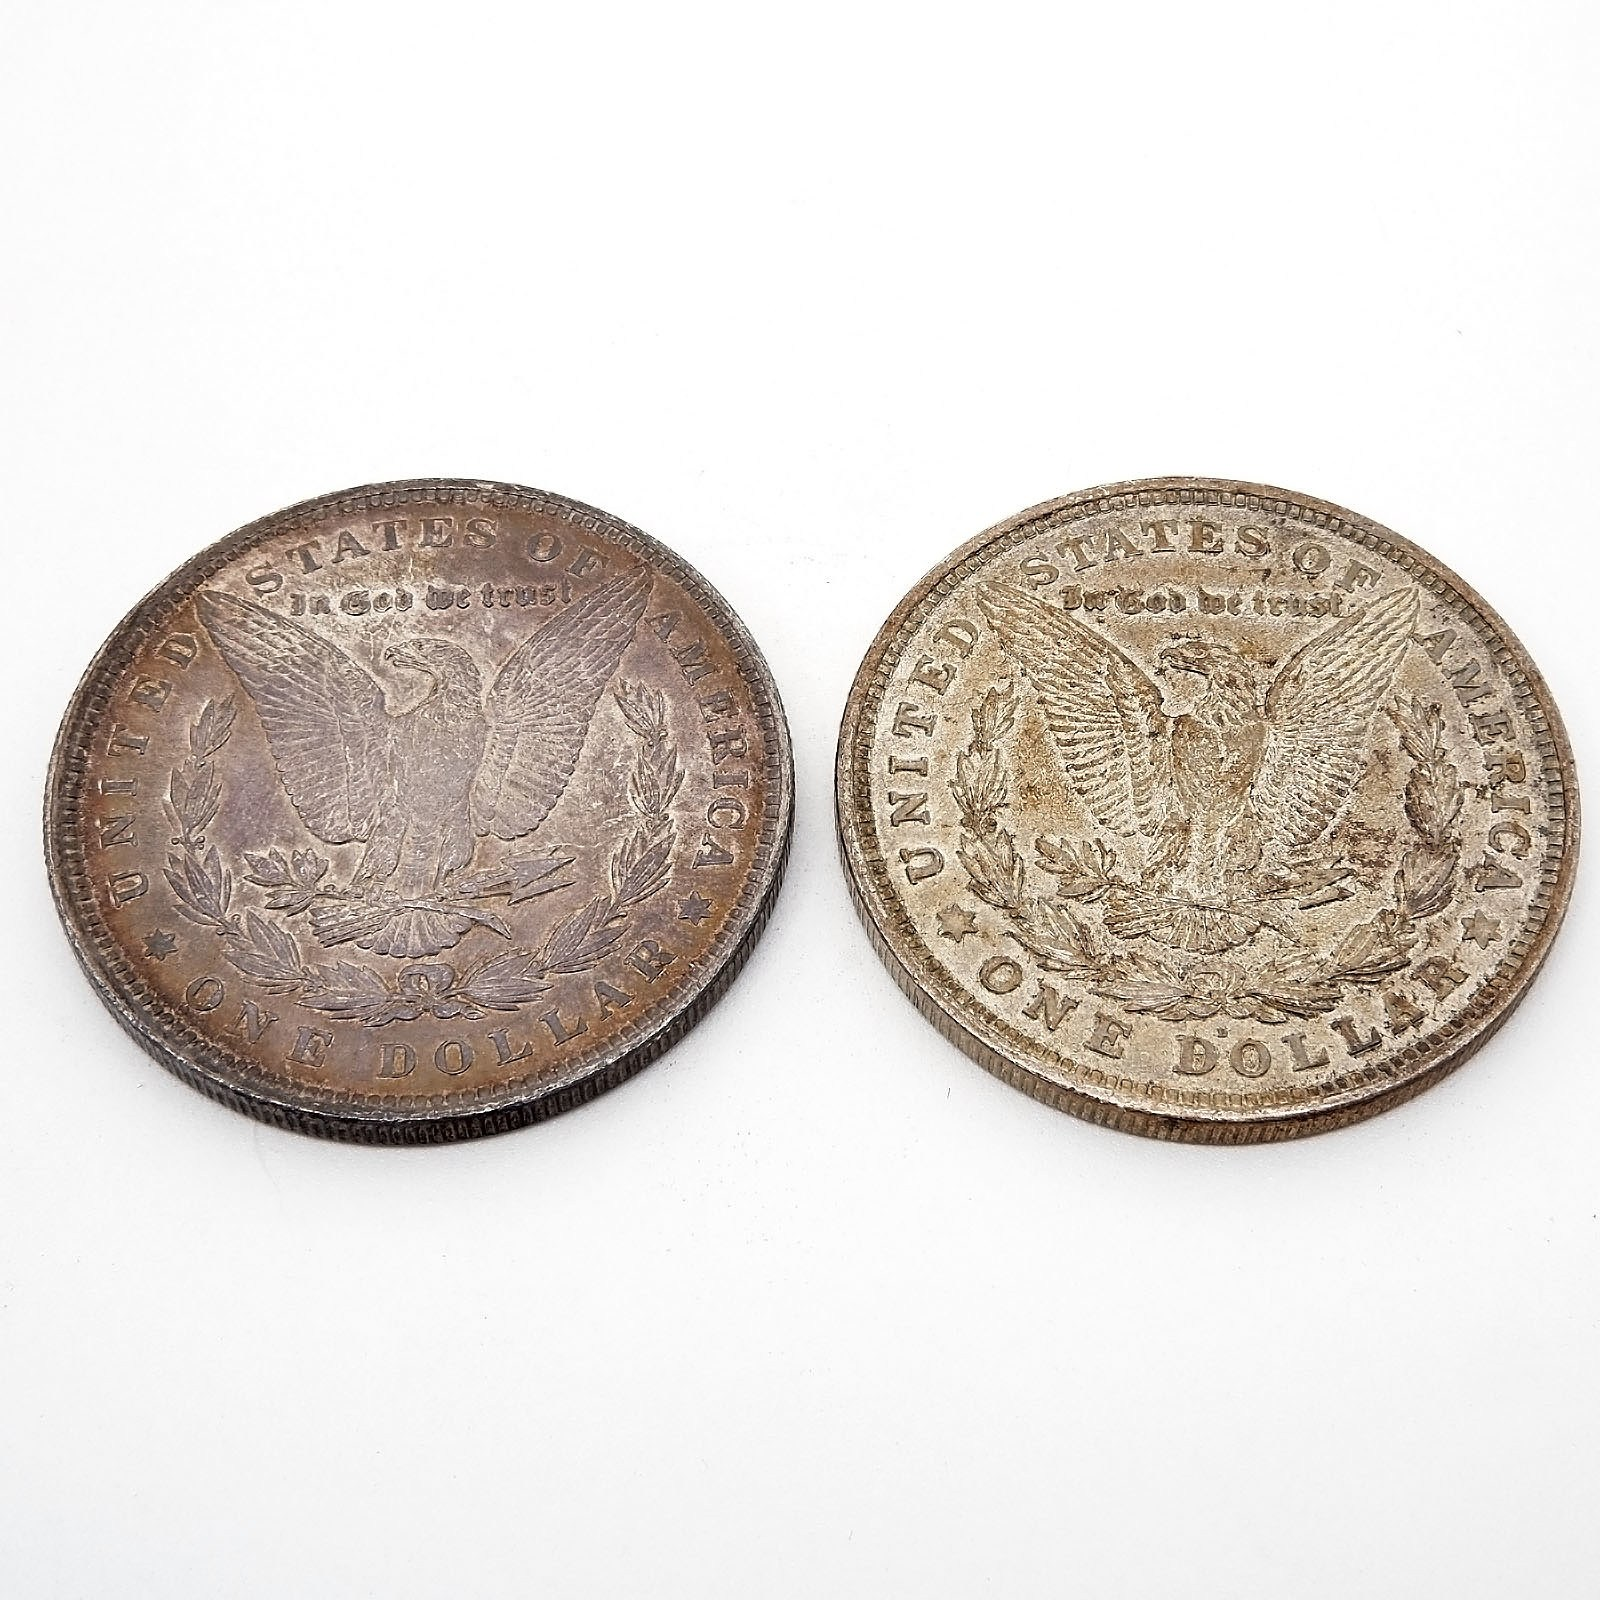 'American 1986 and 1921 Dollars'